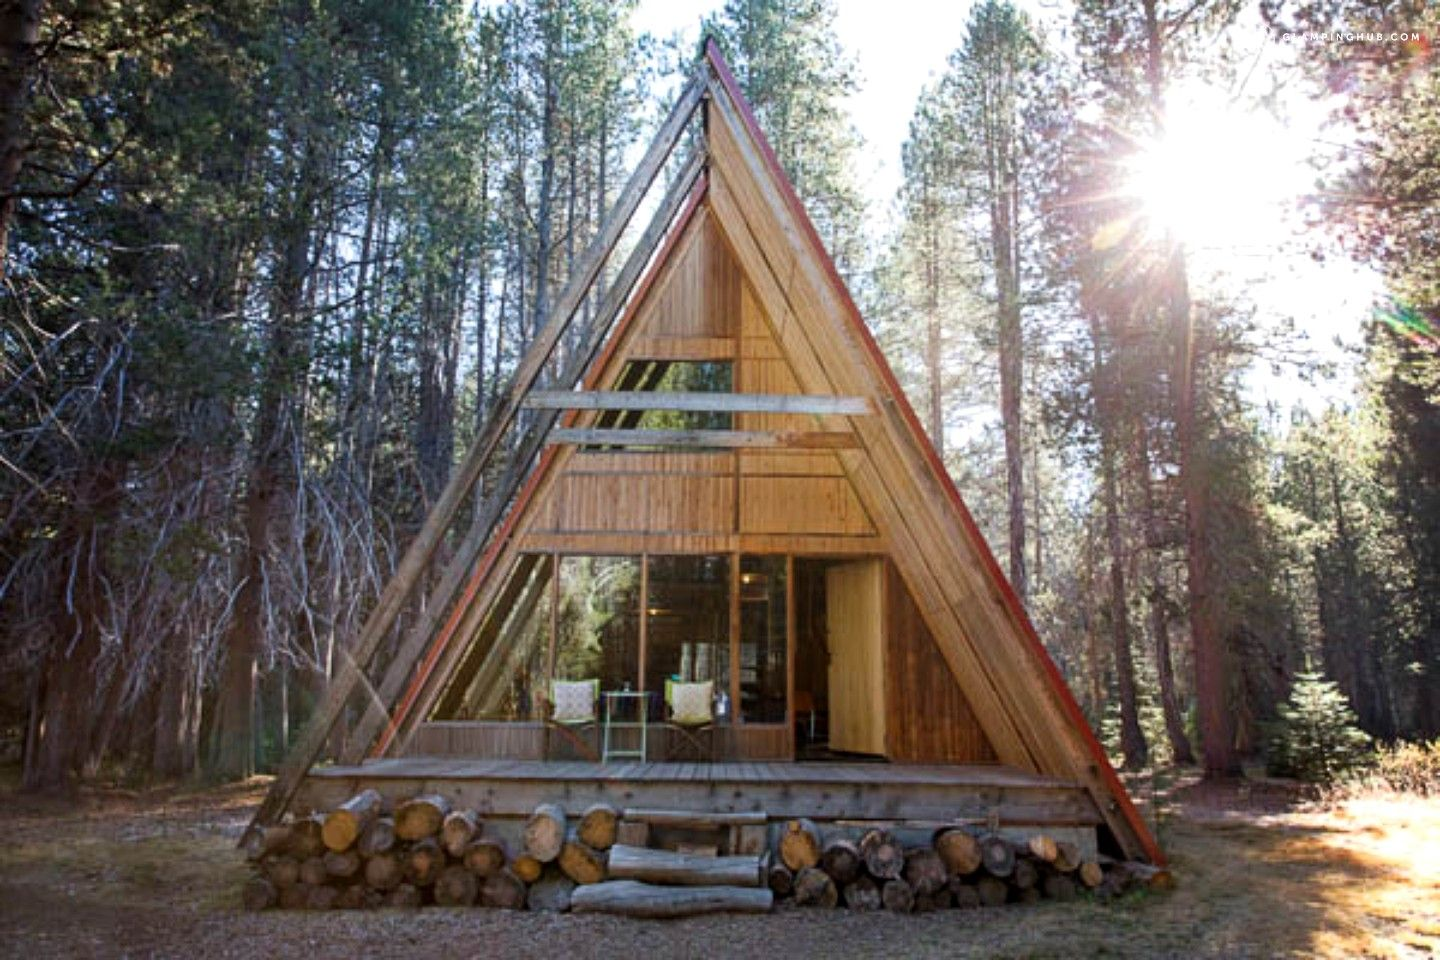 park national on in remodeling forest cabins nice sequoia with ideas home